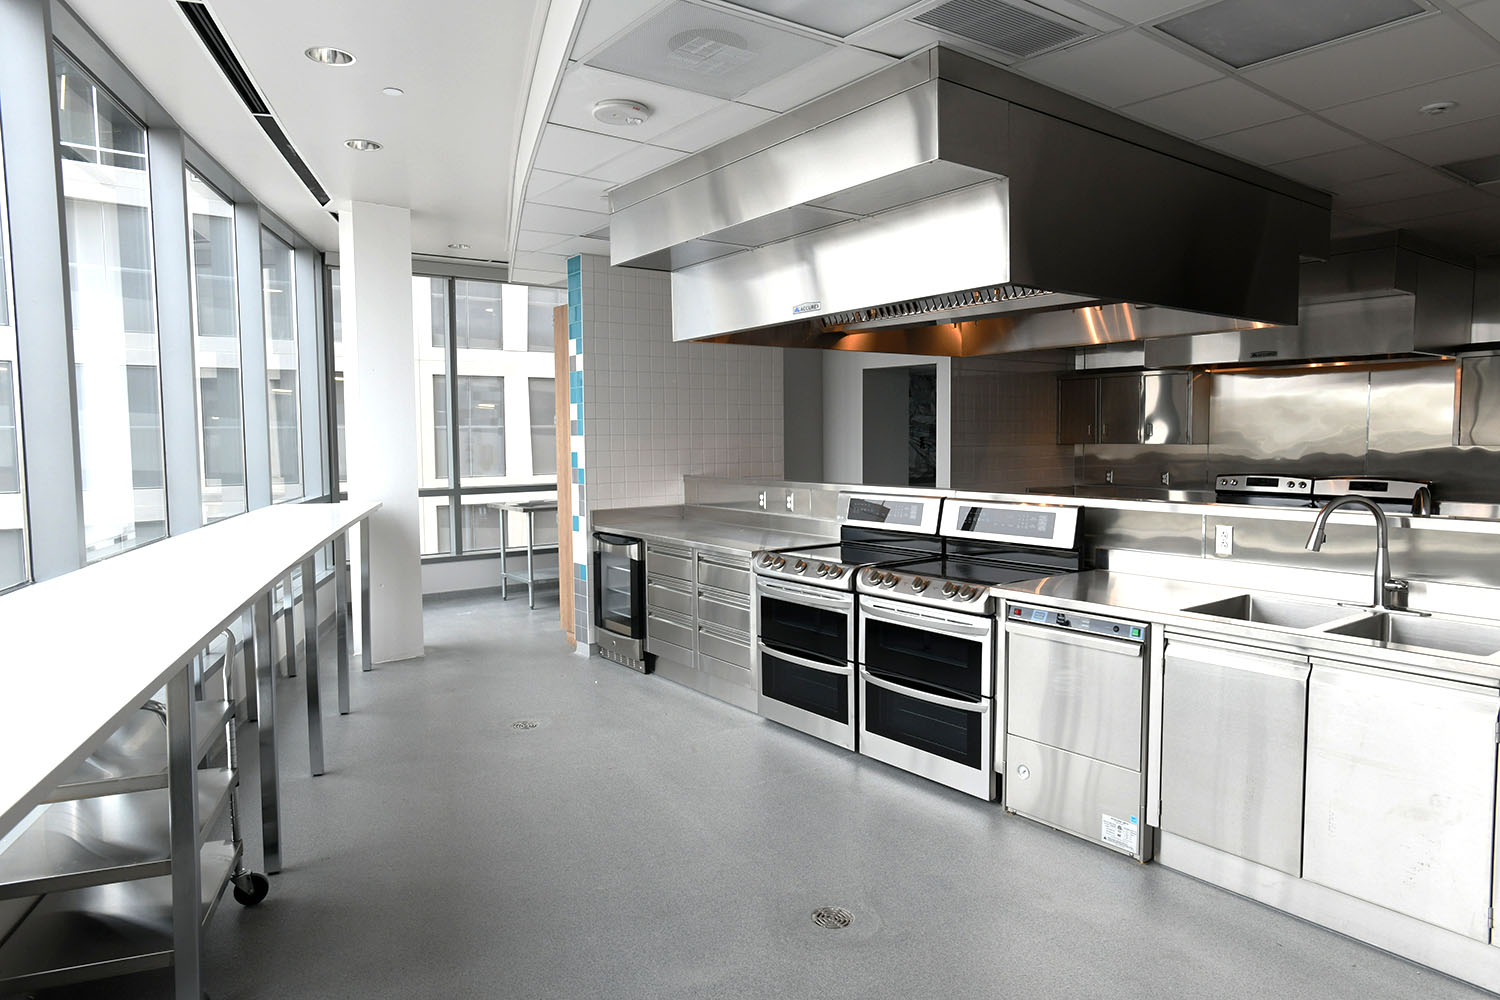 Image of the Innovation Kitchen constructed for Whole Foods Corporation